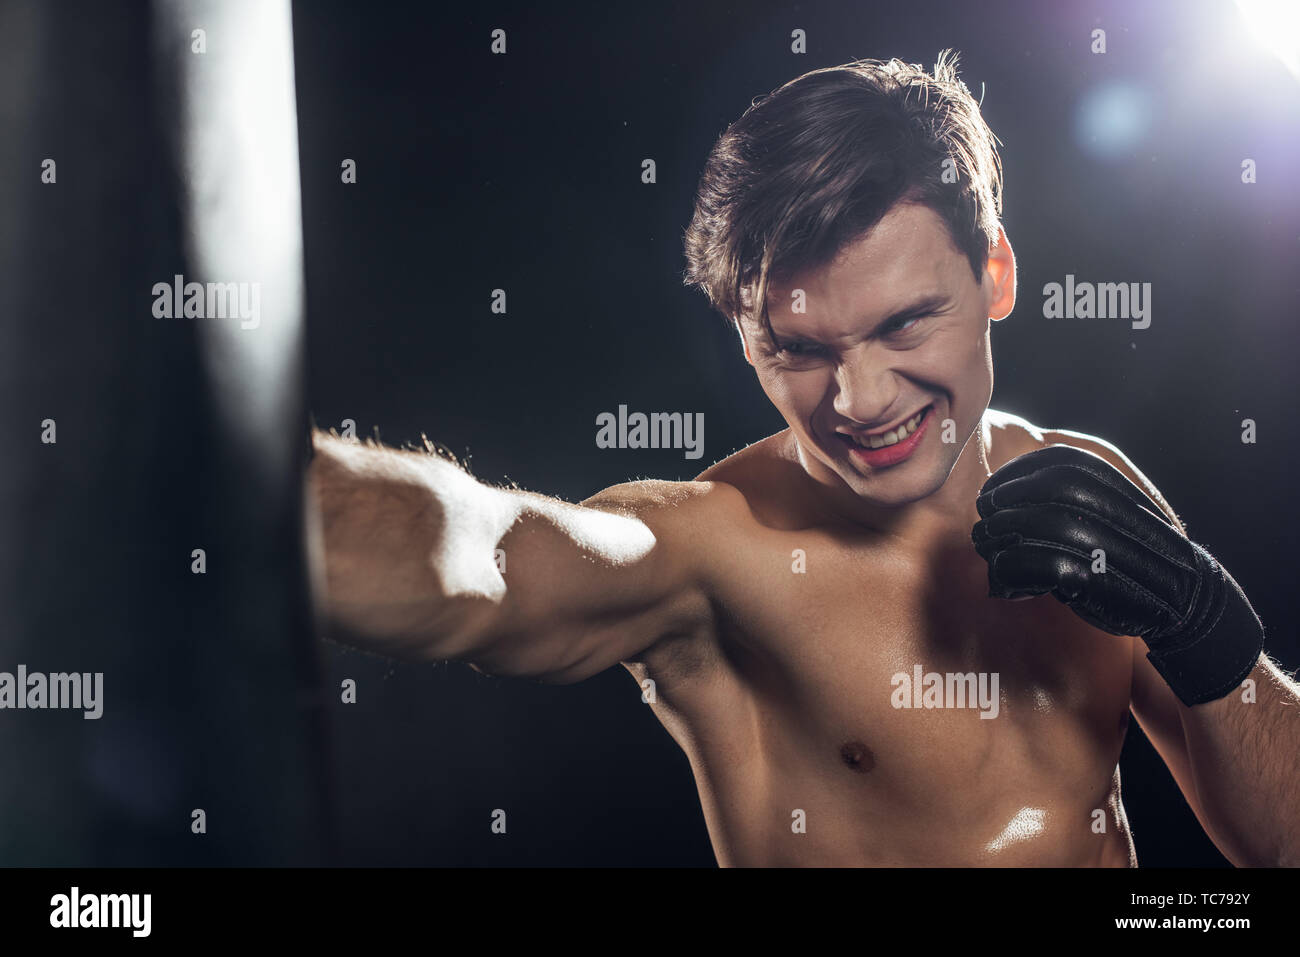 Handsome boxer in boxing glove training with punching bag on black - Stock Image